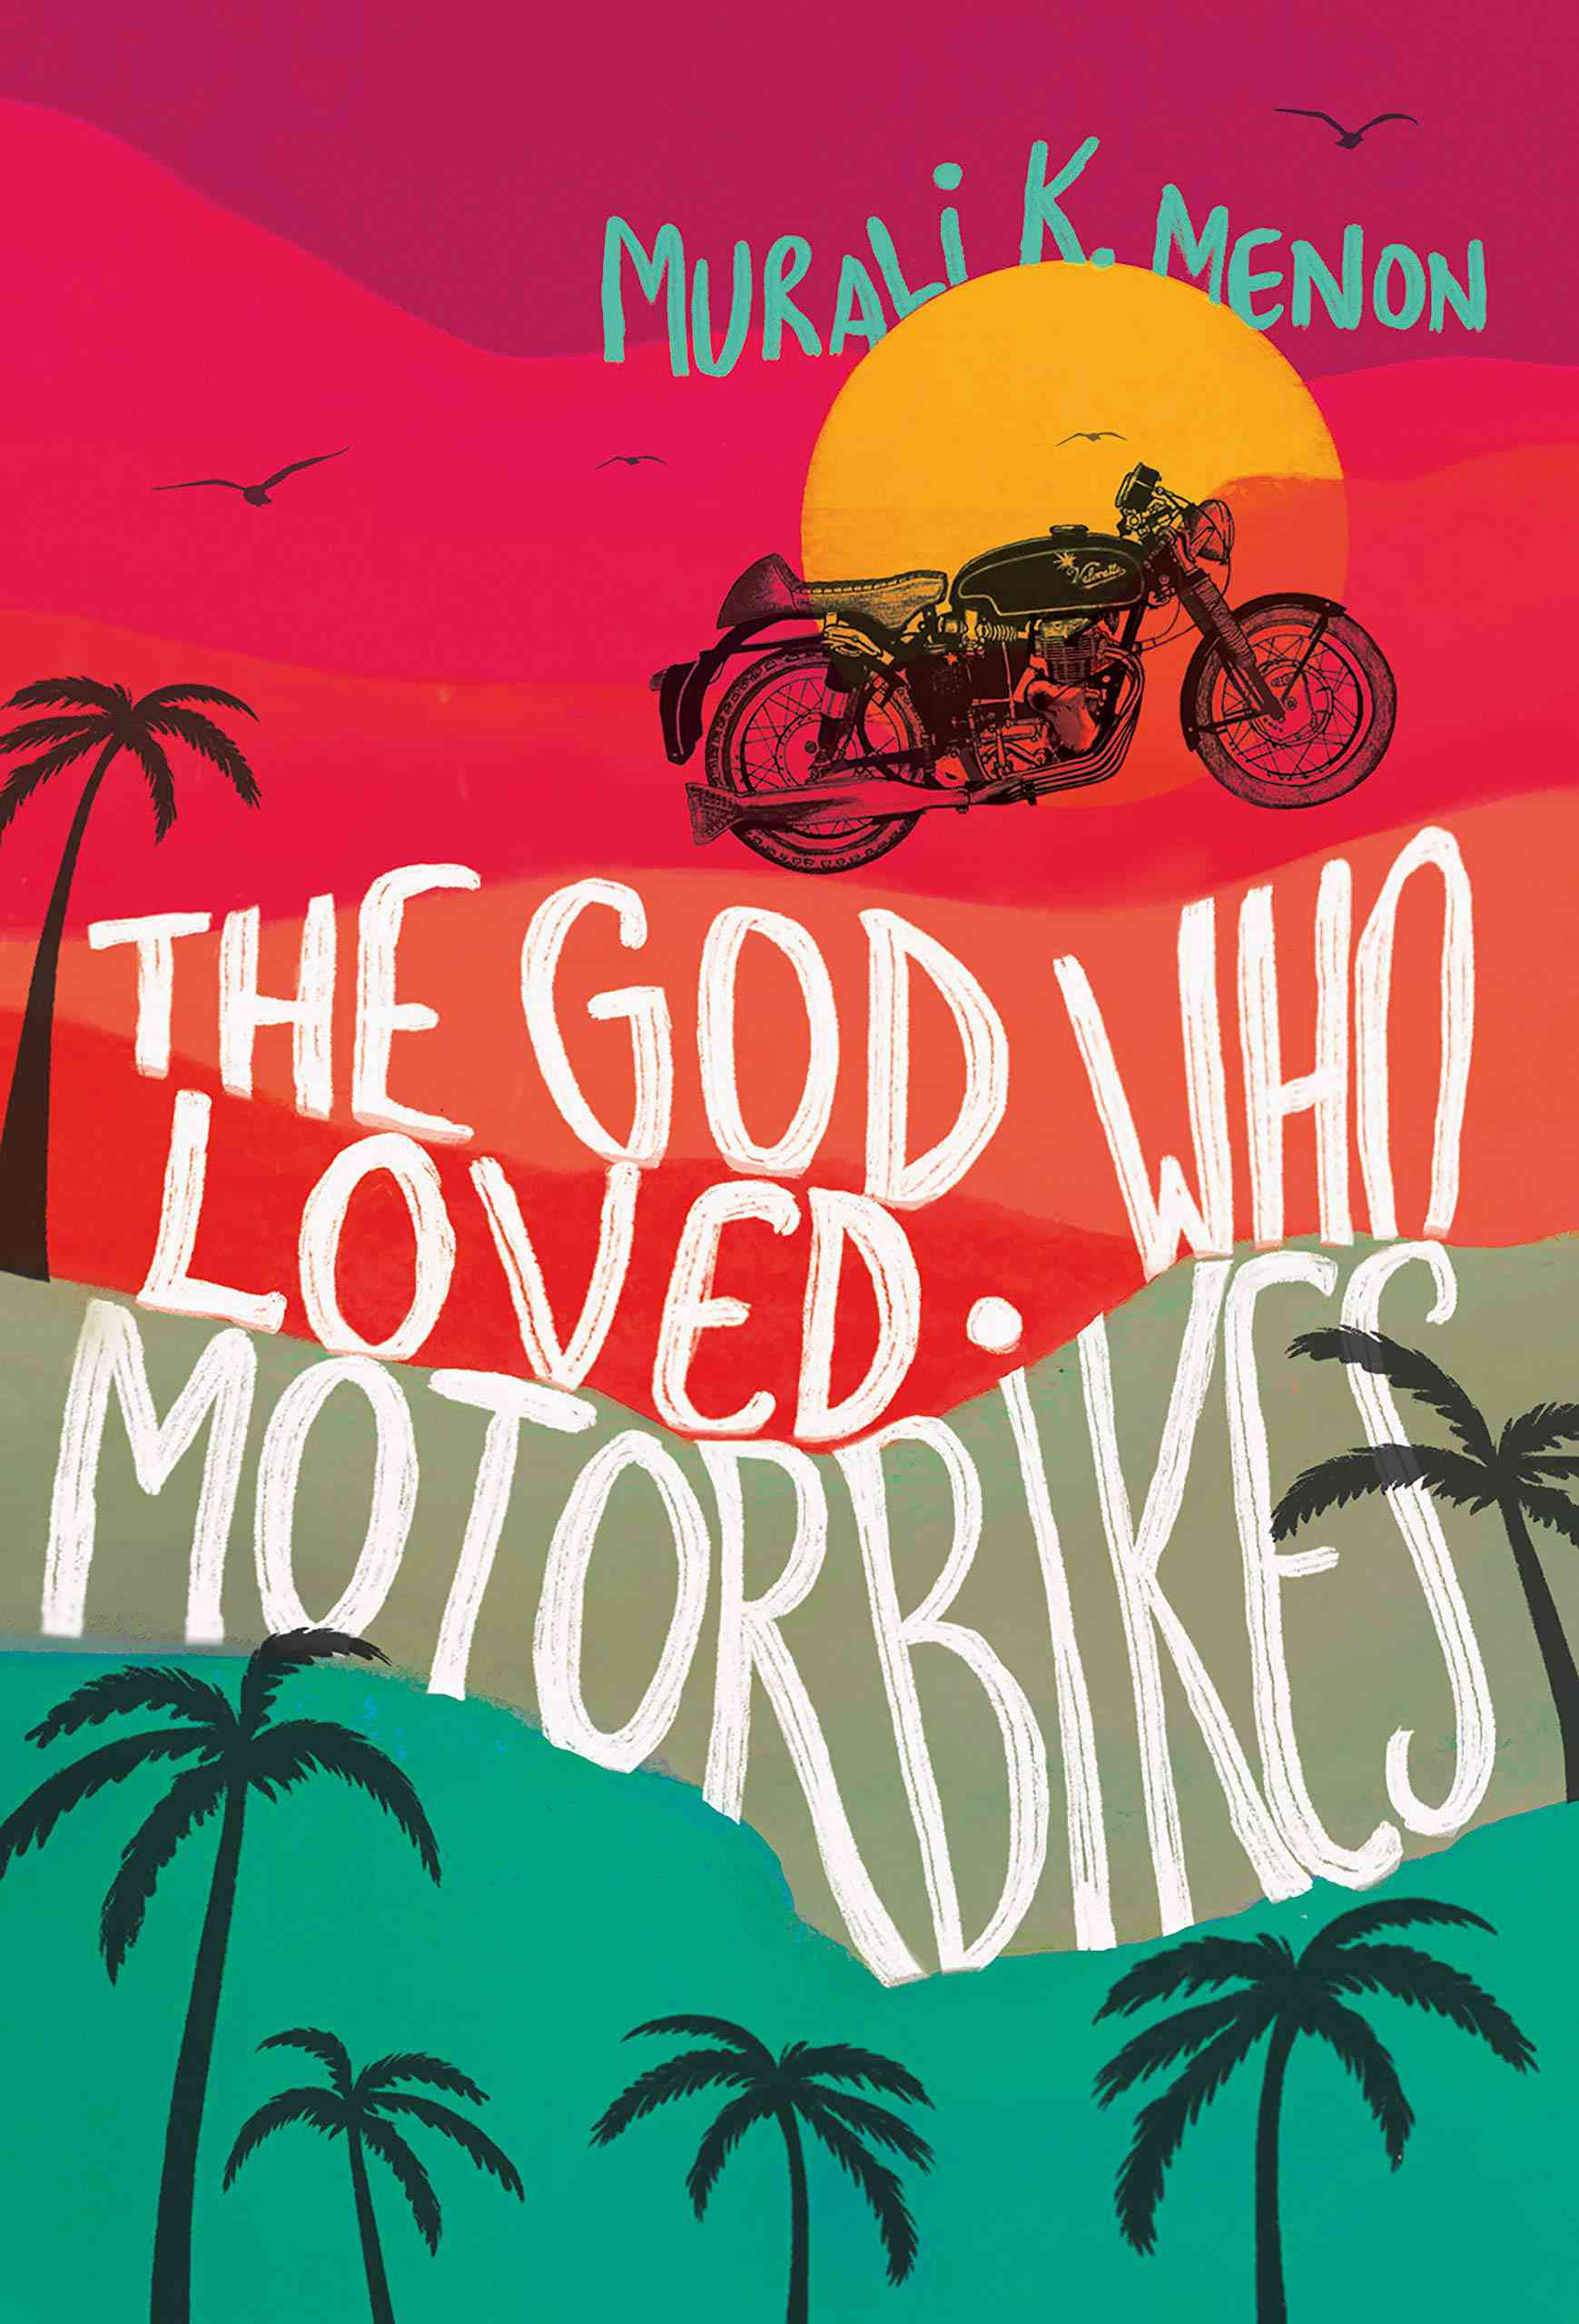 The God Who Loved Motorbikes